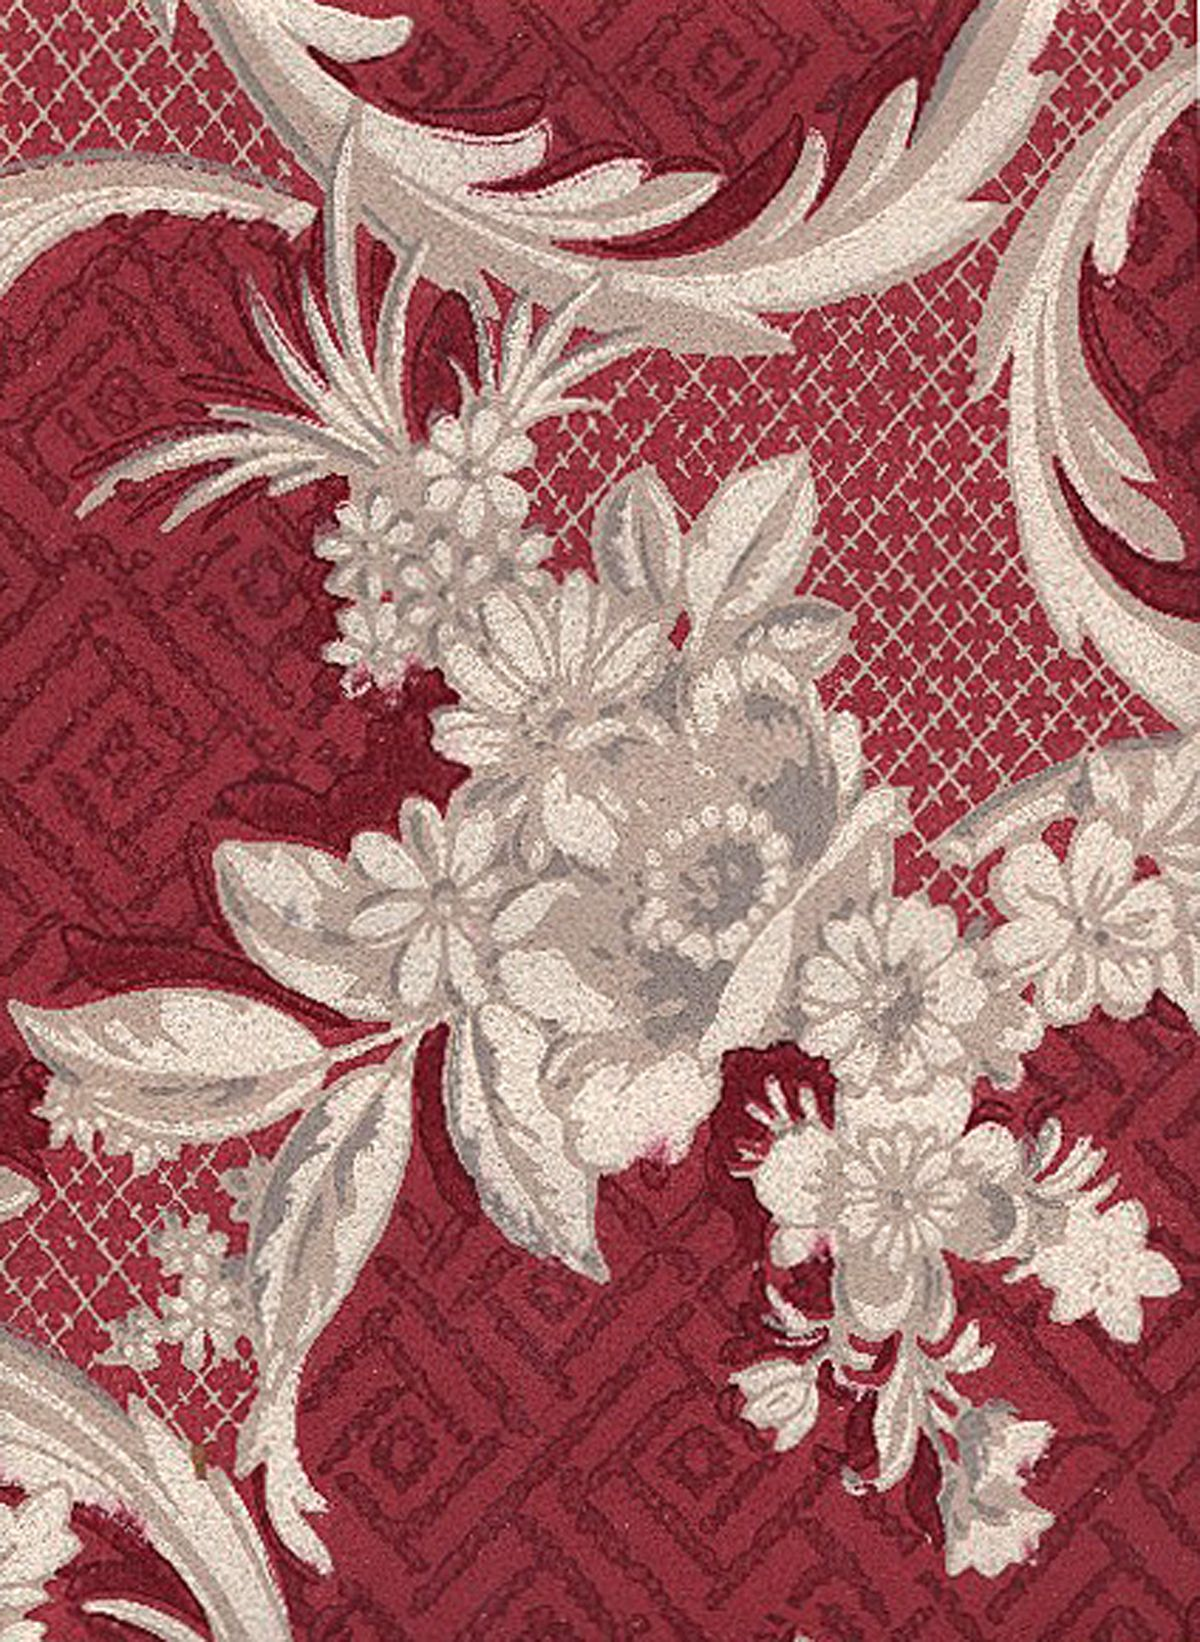 12 Vintage Wallpapers Cabbage Roses and More Vintage